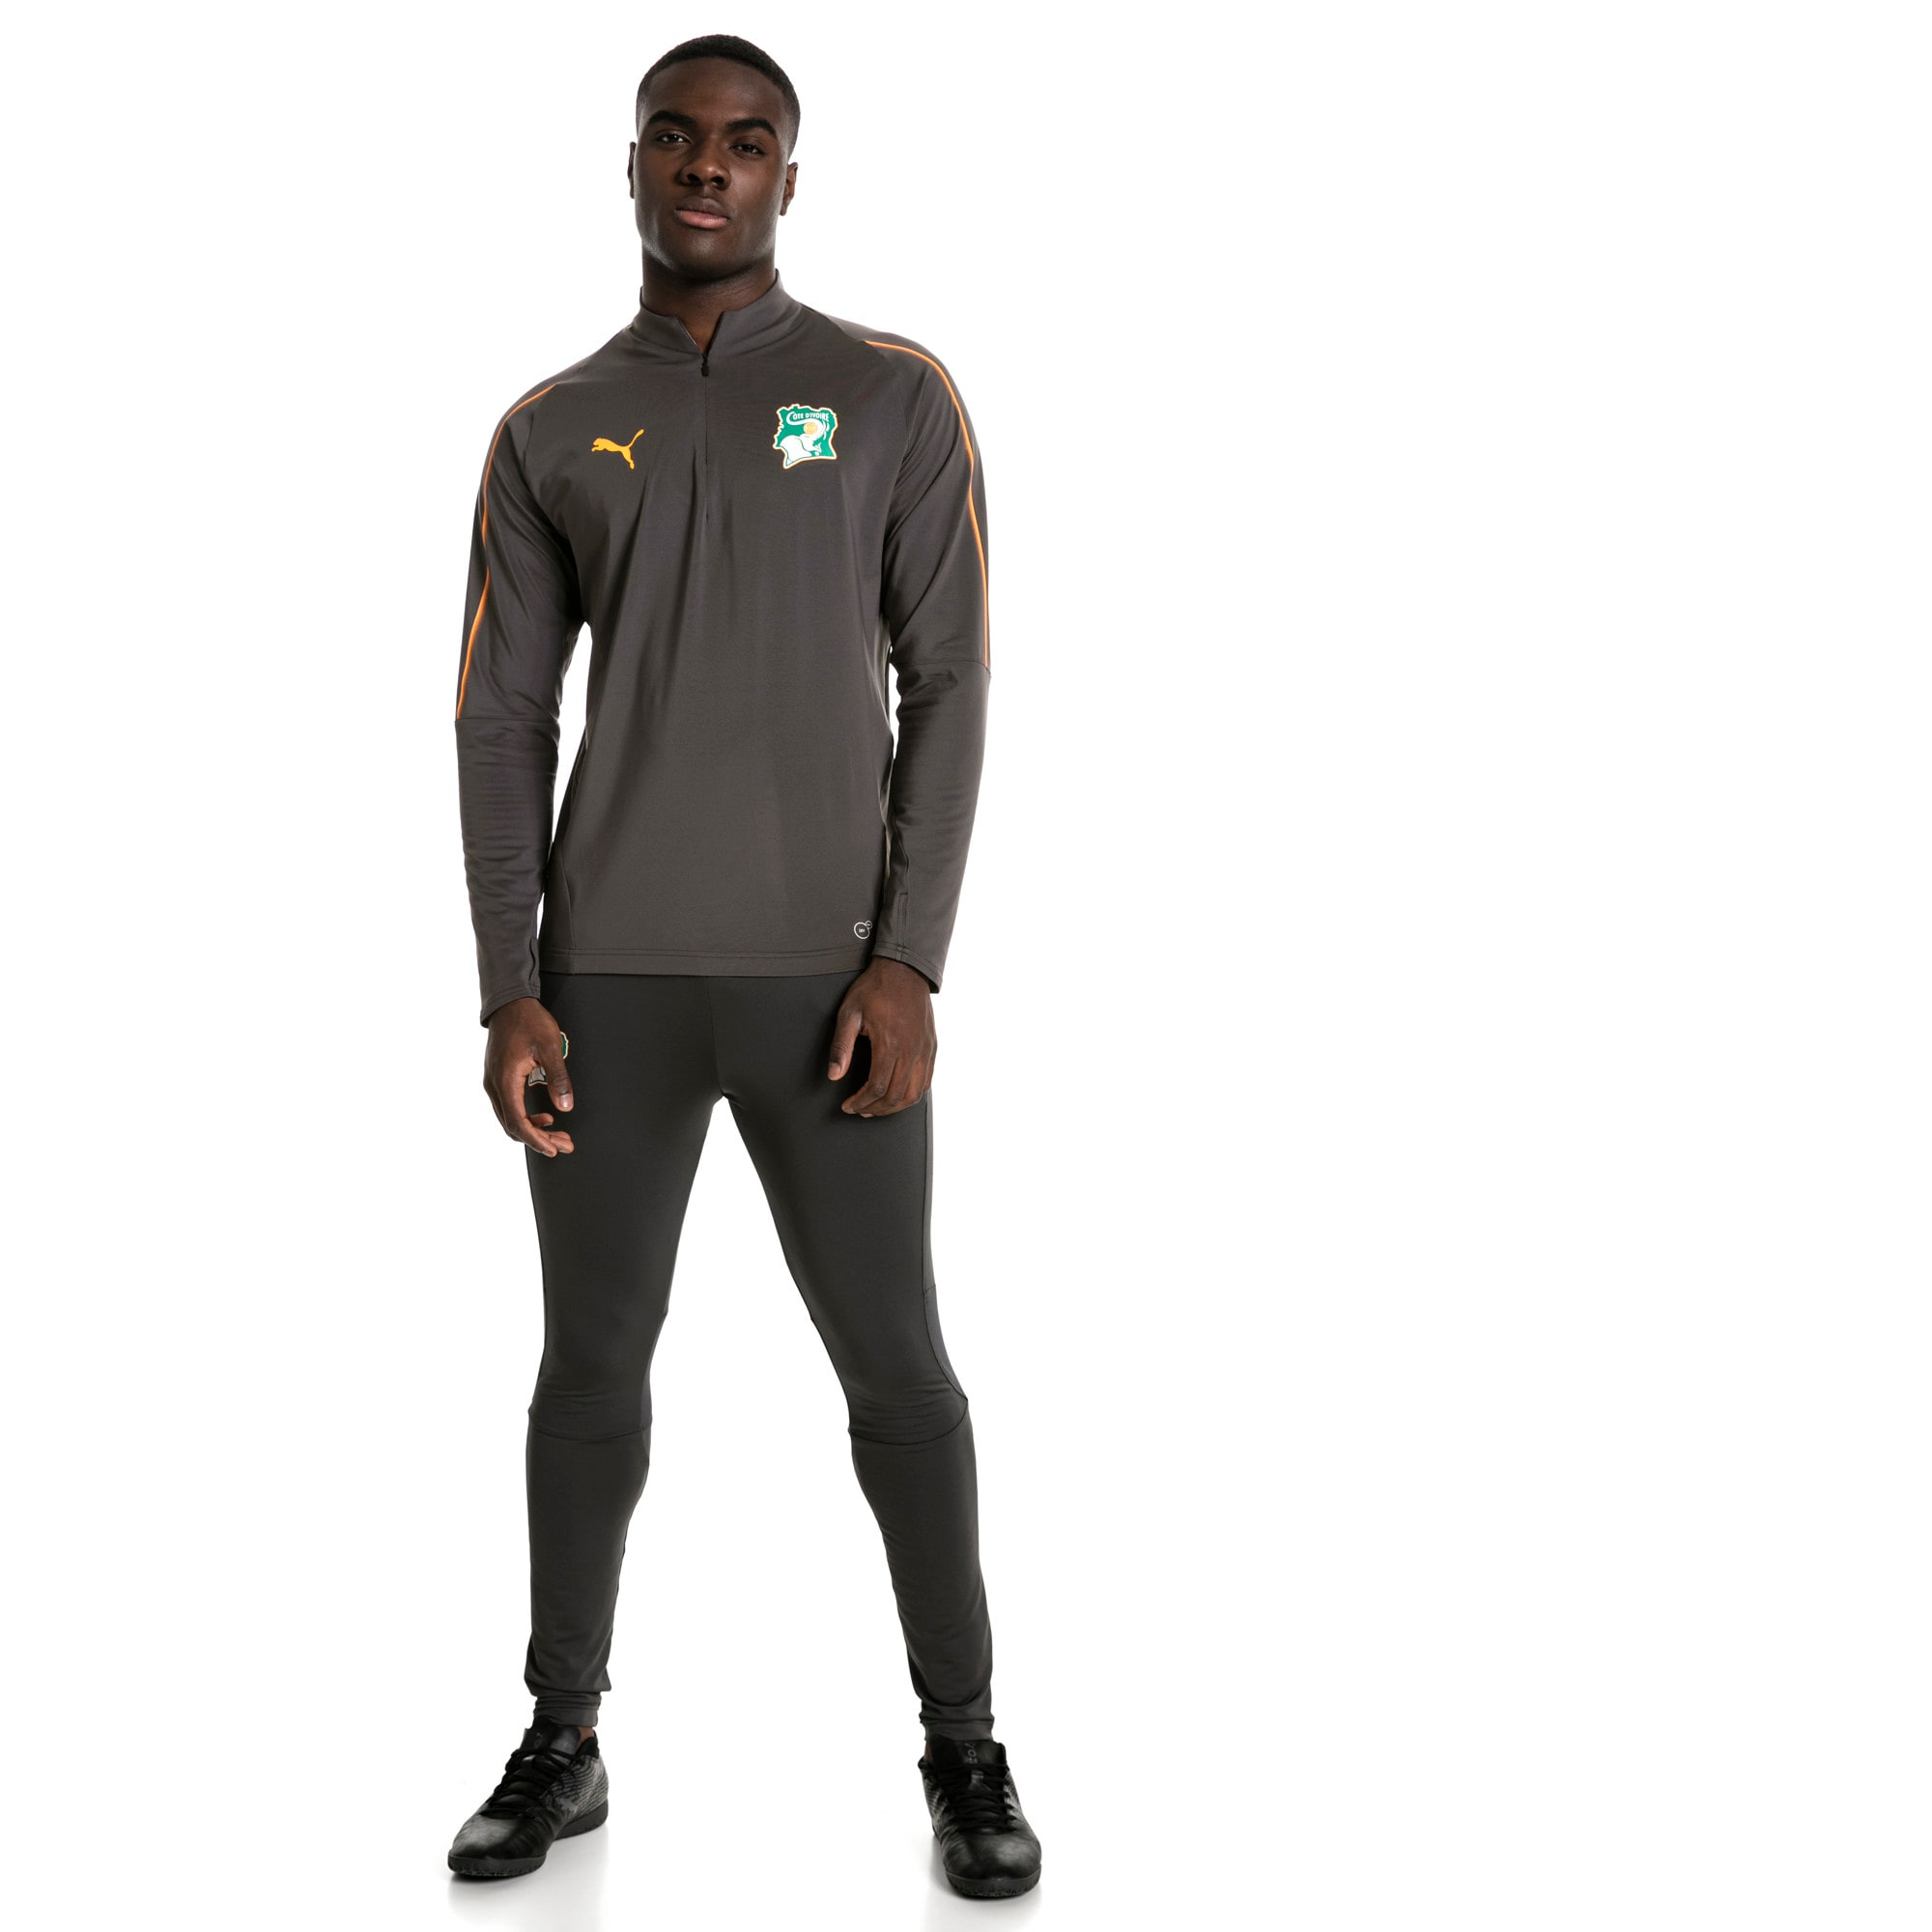 Thumbnail 5 of Ivory Coast 1/4 Zip Training Top, Asphalt, medium